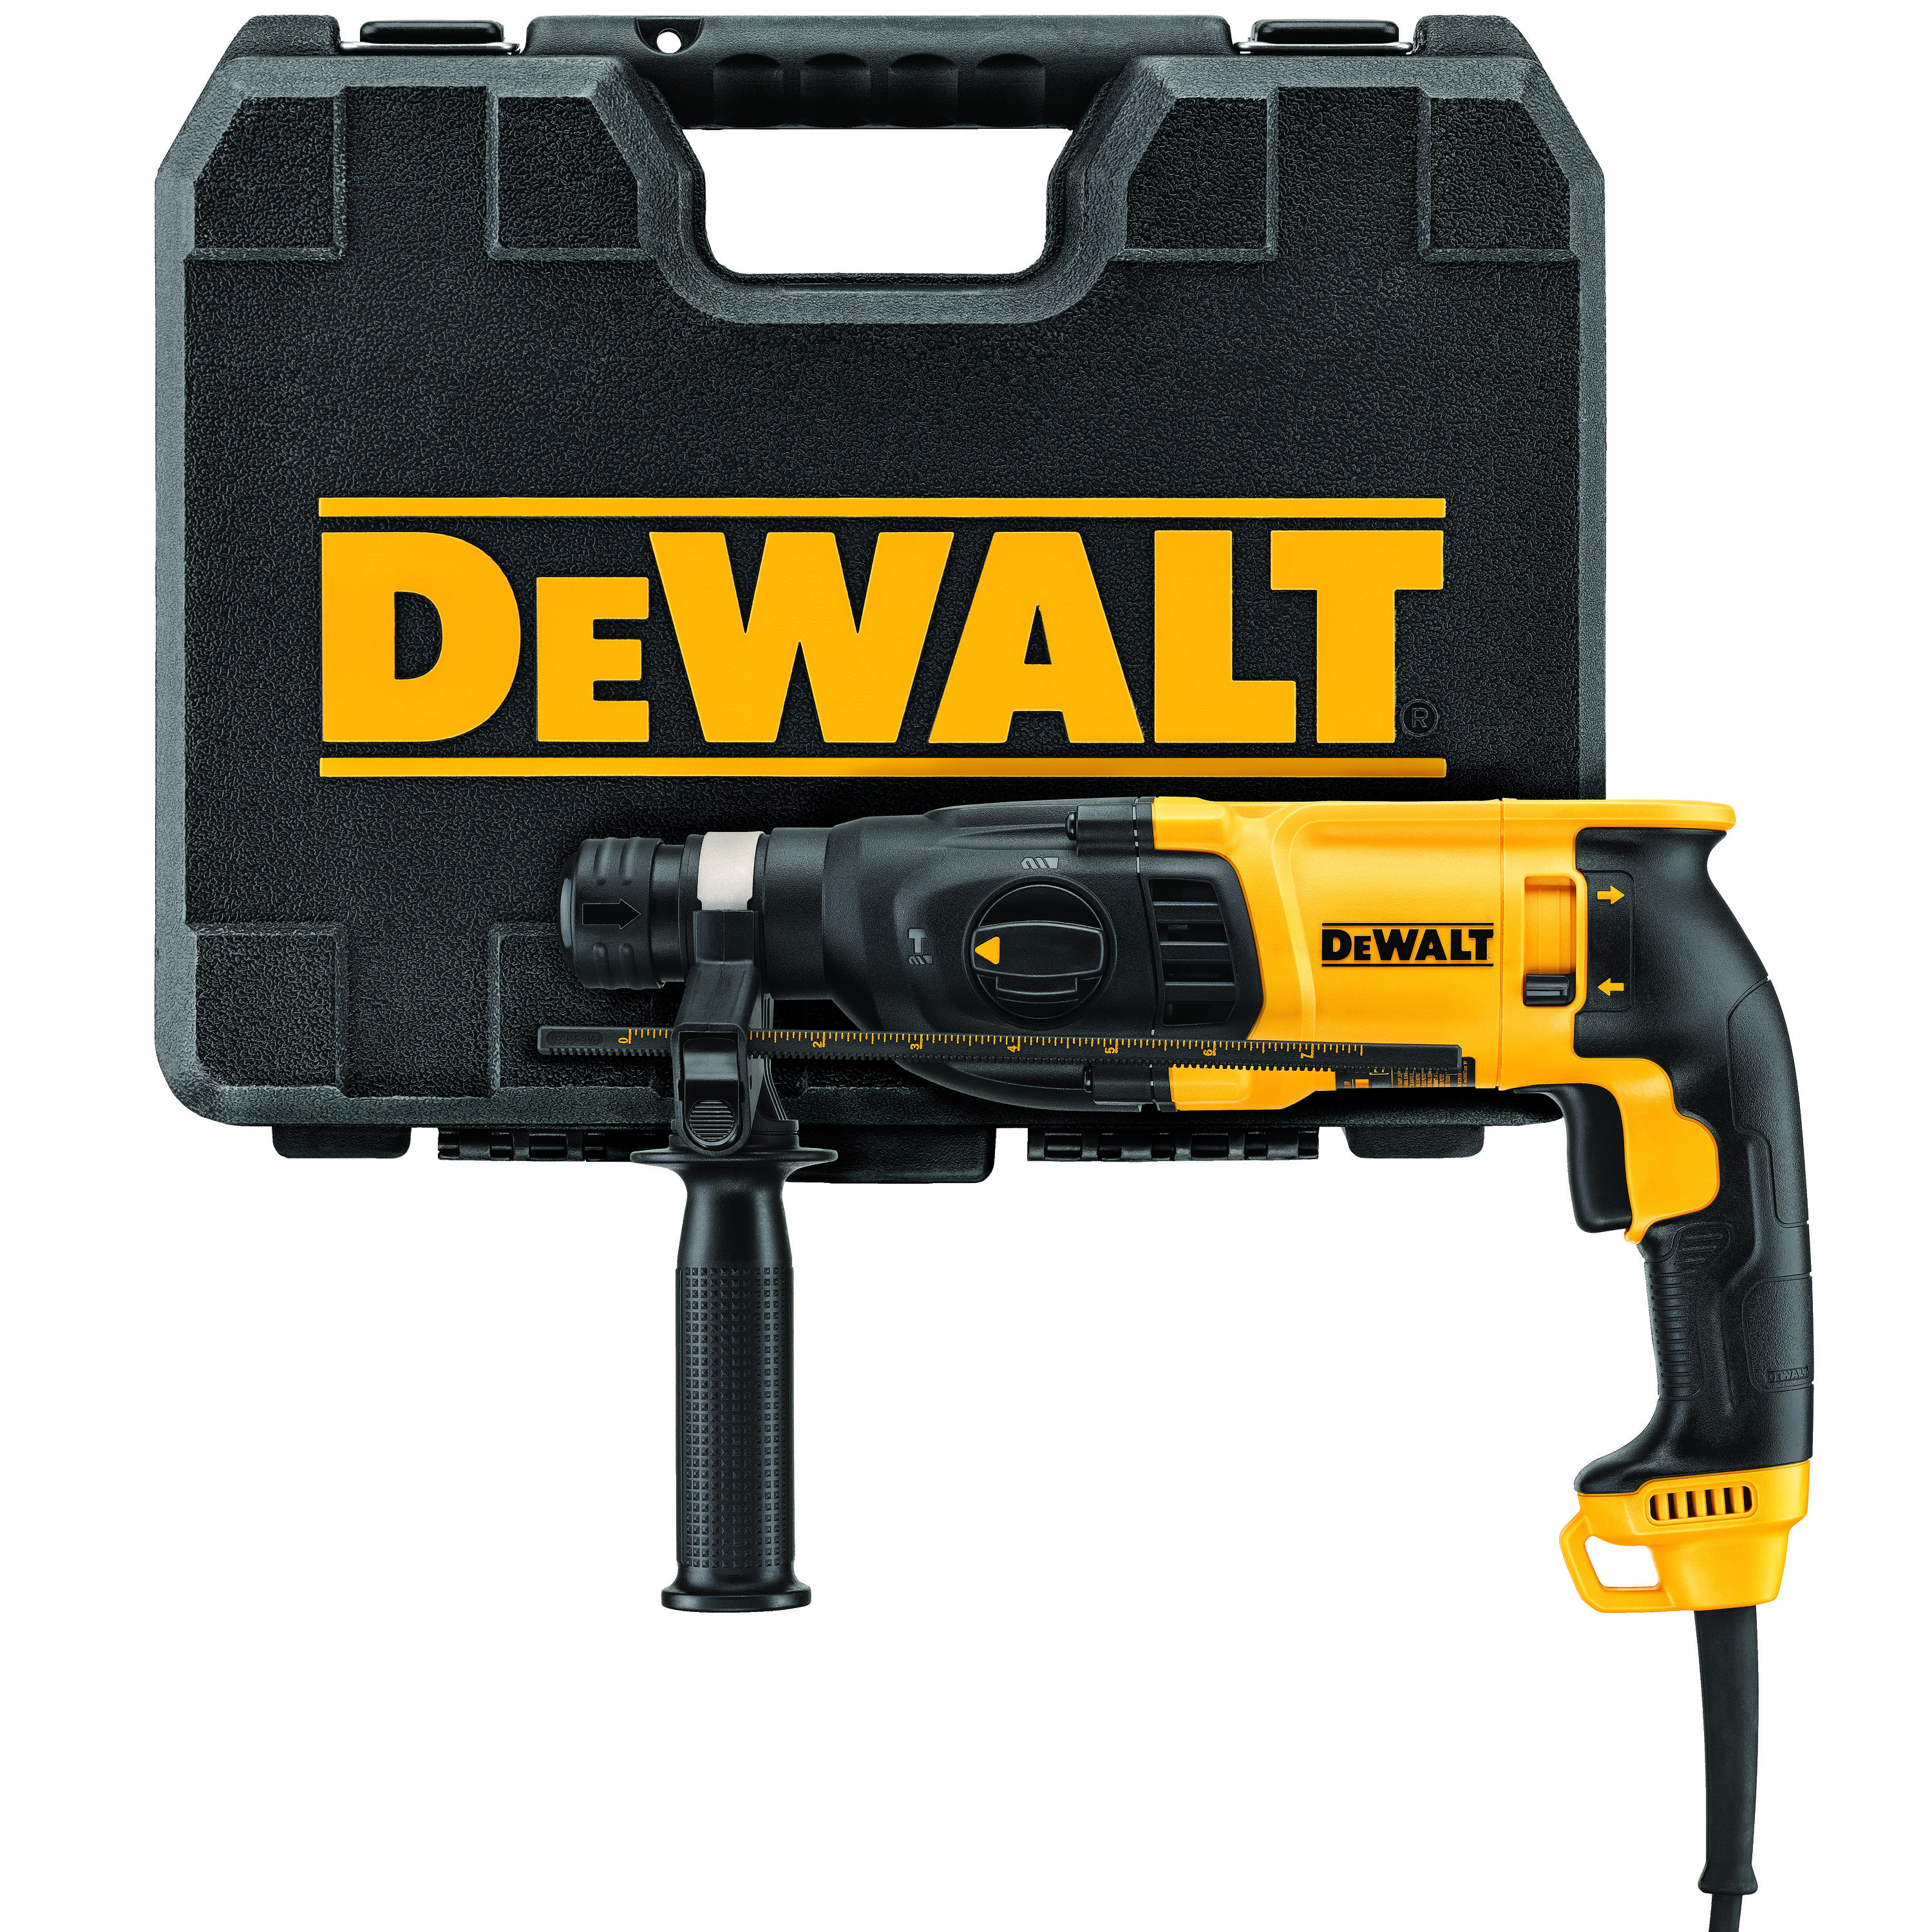 DeWALT® D25133K Corded Rotary Hammer Kit, 1 in SDS Plus® Chuck, 0 to 5500 bpm, 0 to 1500 rpm No-Load, 13-1/4 in OAL